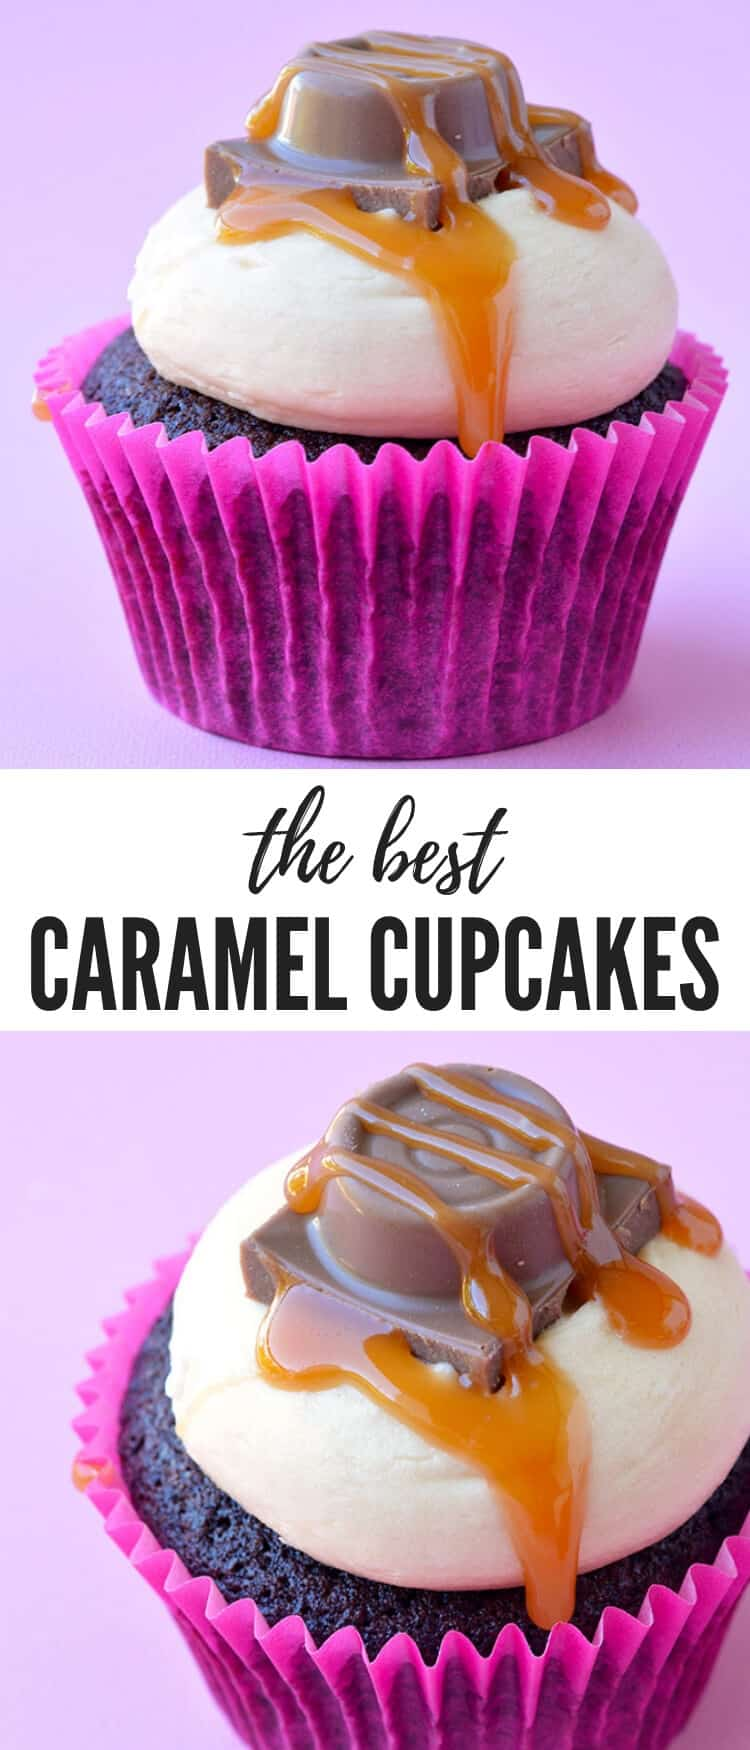 These Salted Caramel Chocolate Cupcakes are AMAZING! Soft chocolate cake topped with homemade caramel frosting, a drizzle of caramel sauce and a chocolate caramel Rolo! Recipe from sweetestmenu.com #dessert #cupcakes #caramel #chocolate